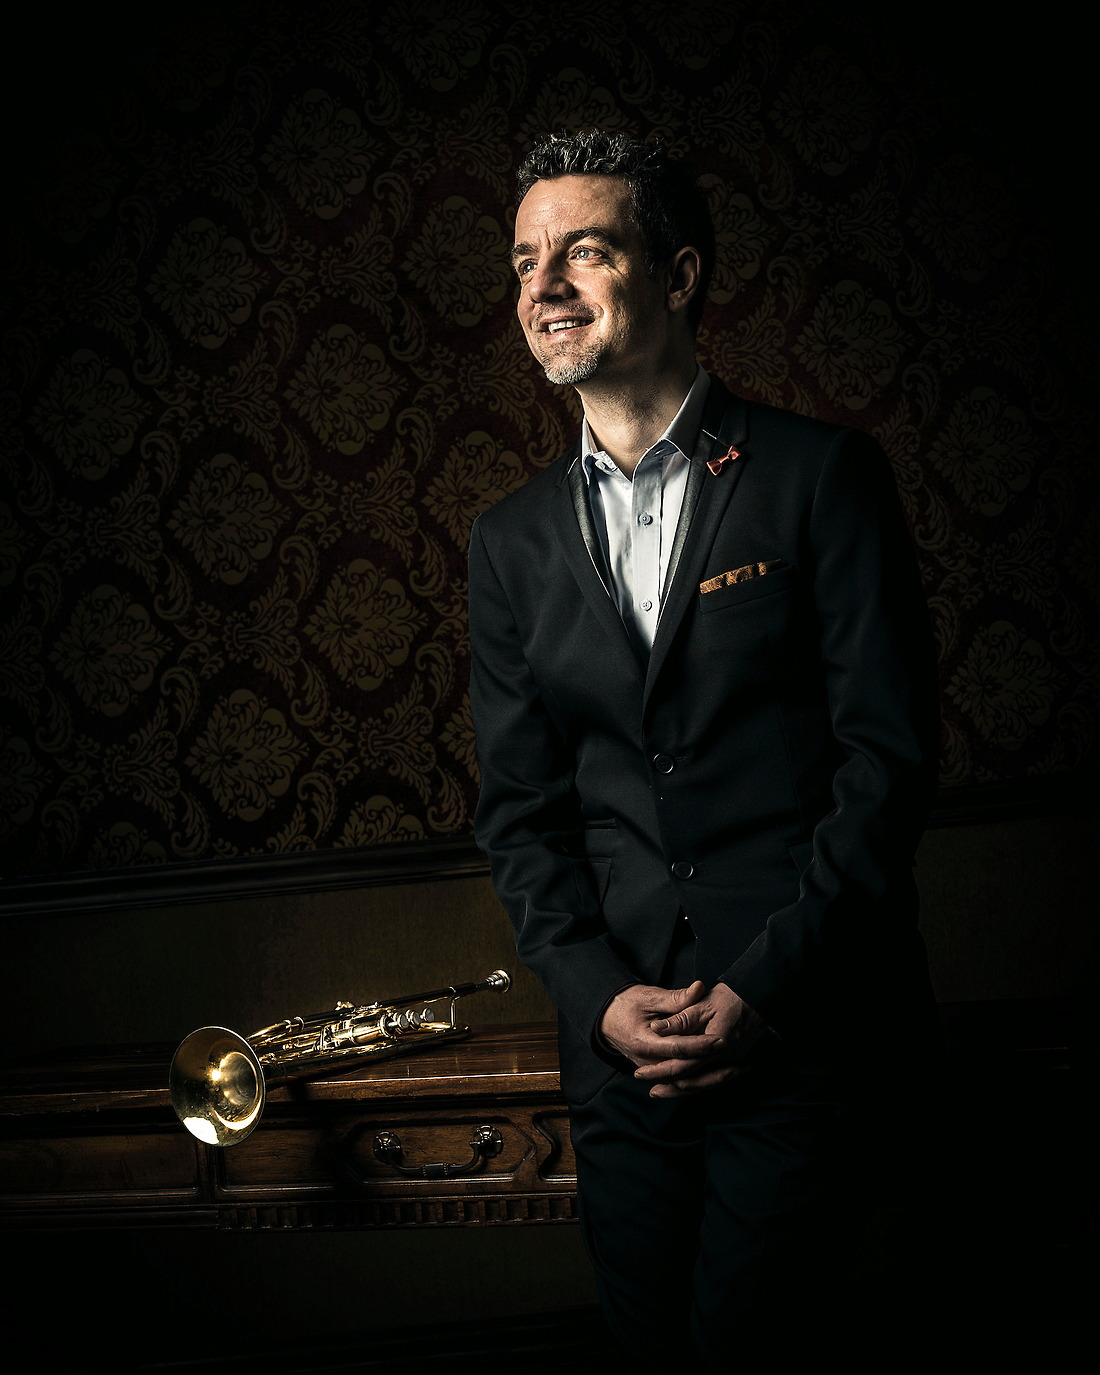 Joe Burgstaller International Trumpet Soloist / Clinician and former member of Canadian Brass. — © Jeremy Lock/